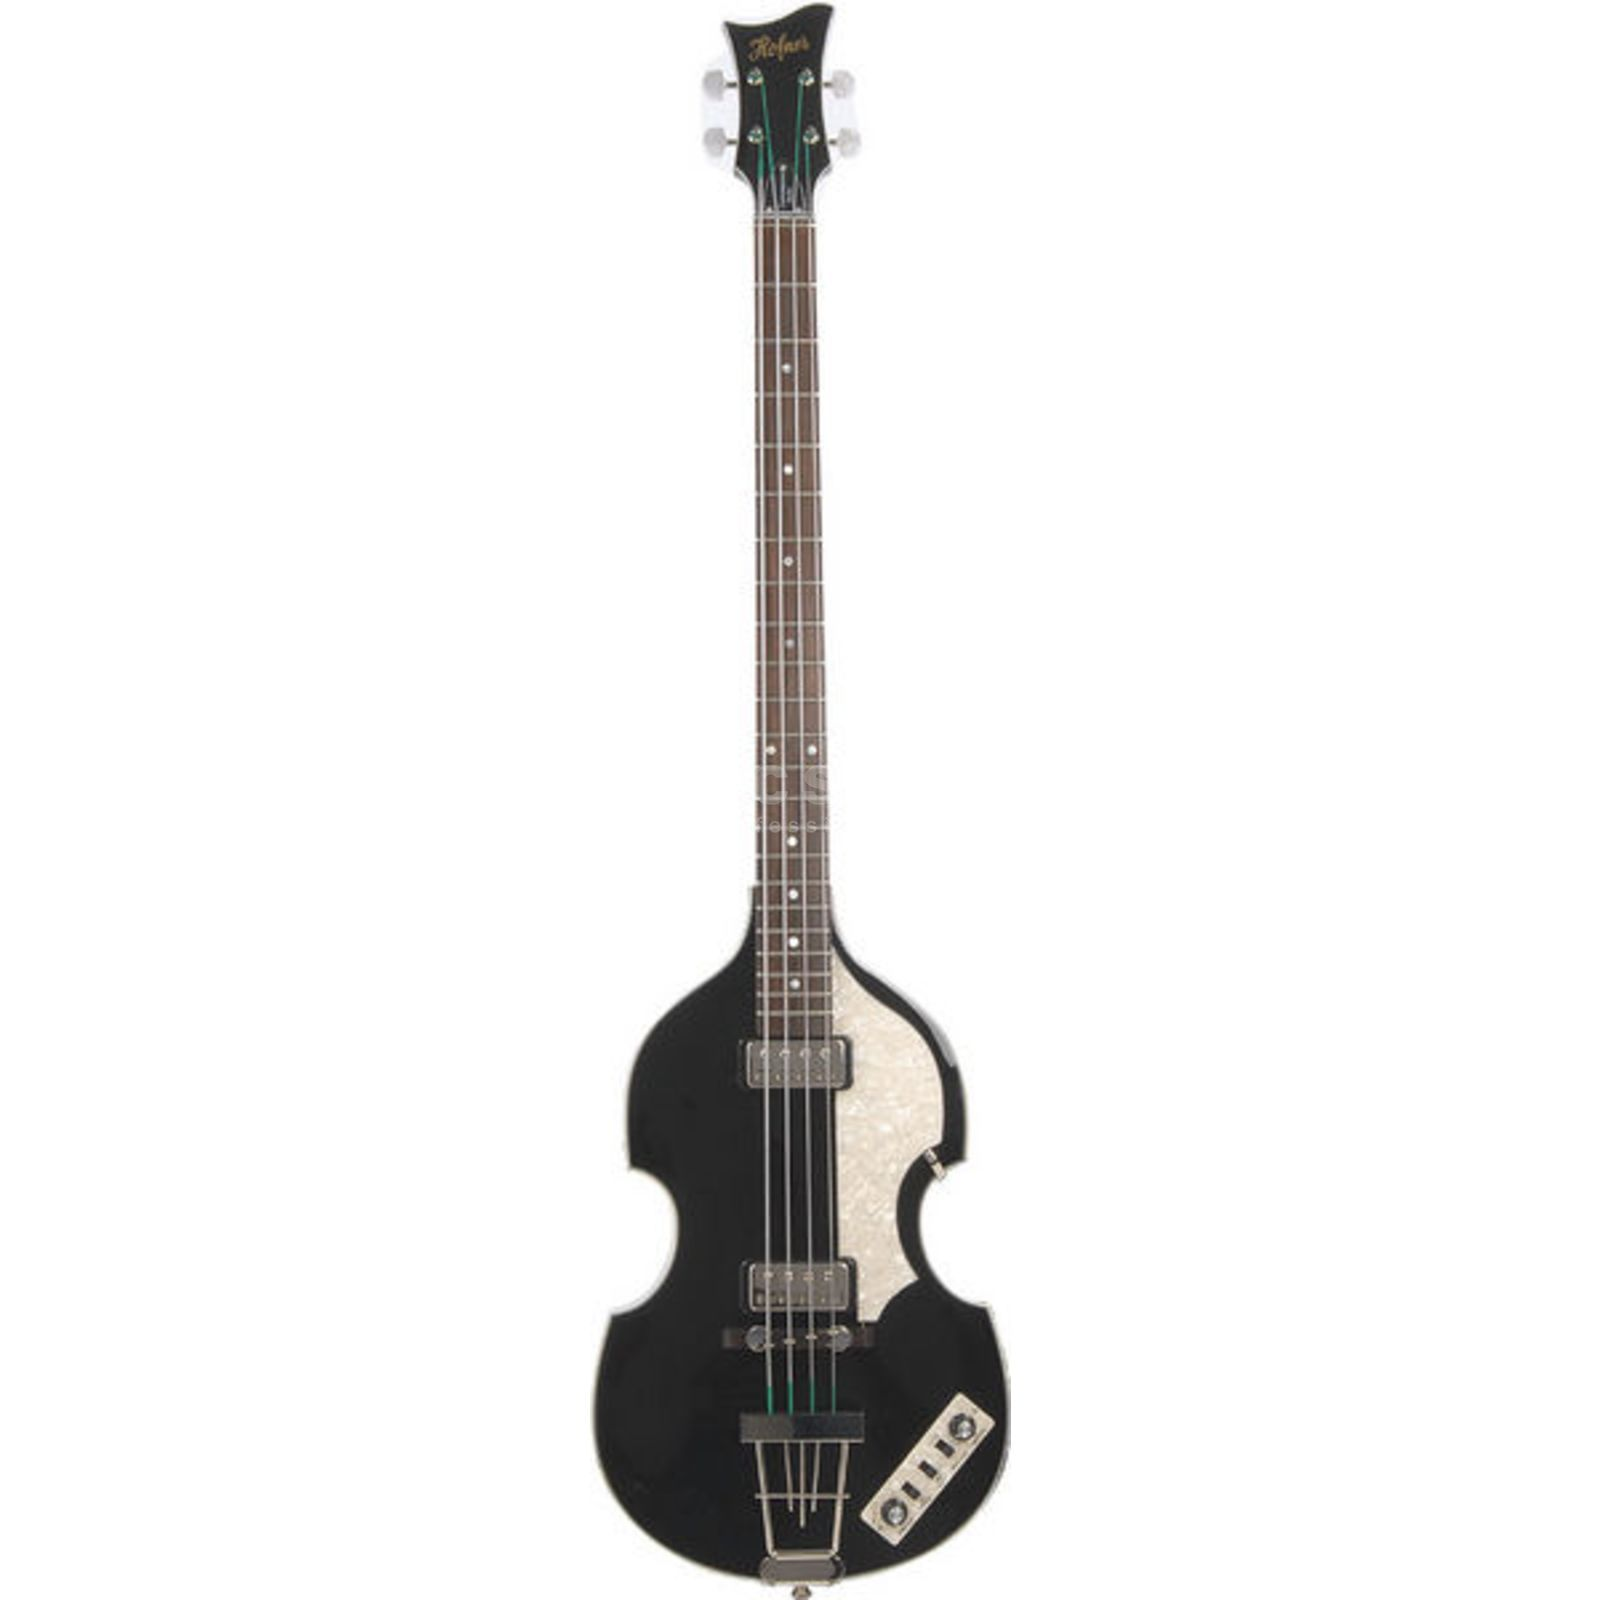 Höfner Contemporary Violin Bass Black HCT-500/1-BK B-Stock Immagine prodotto